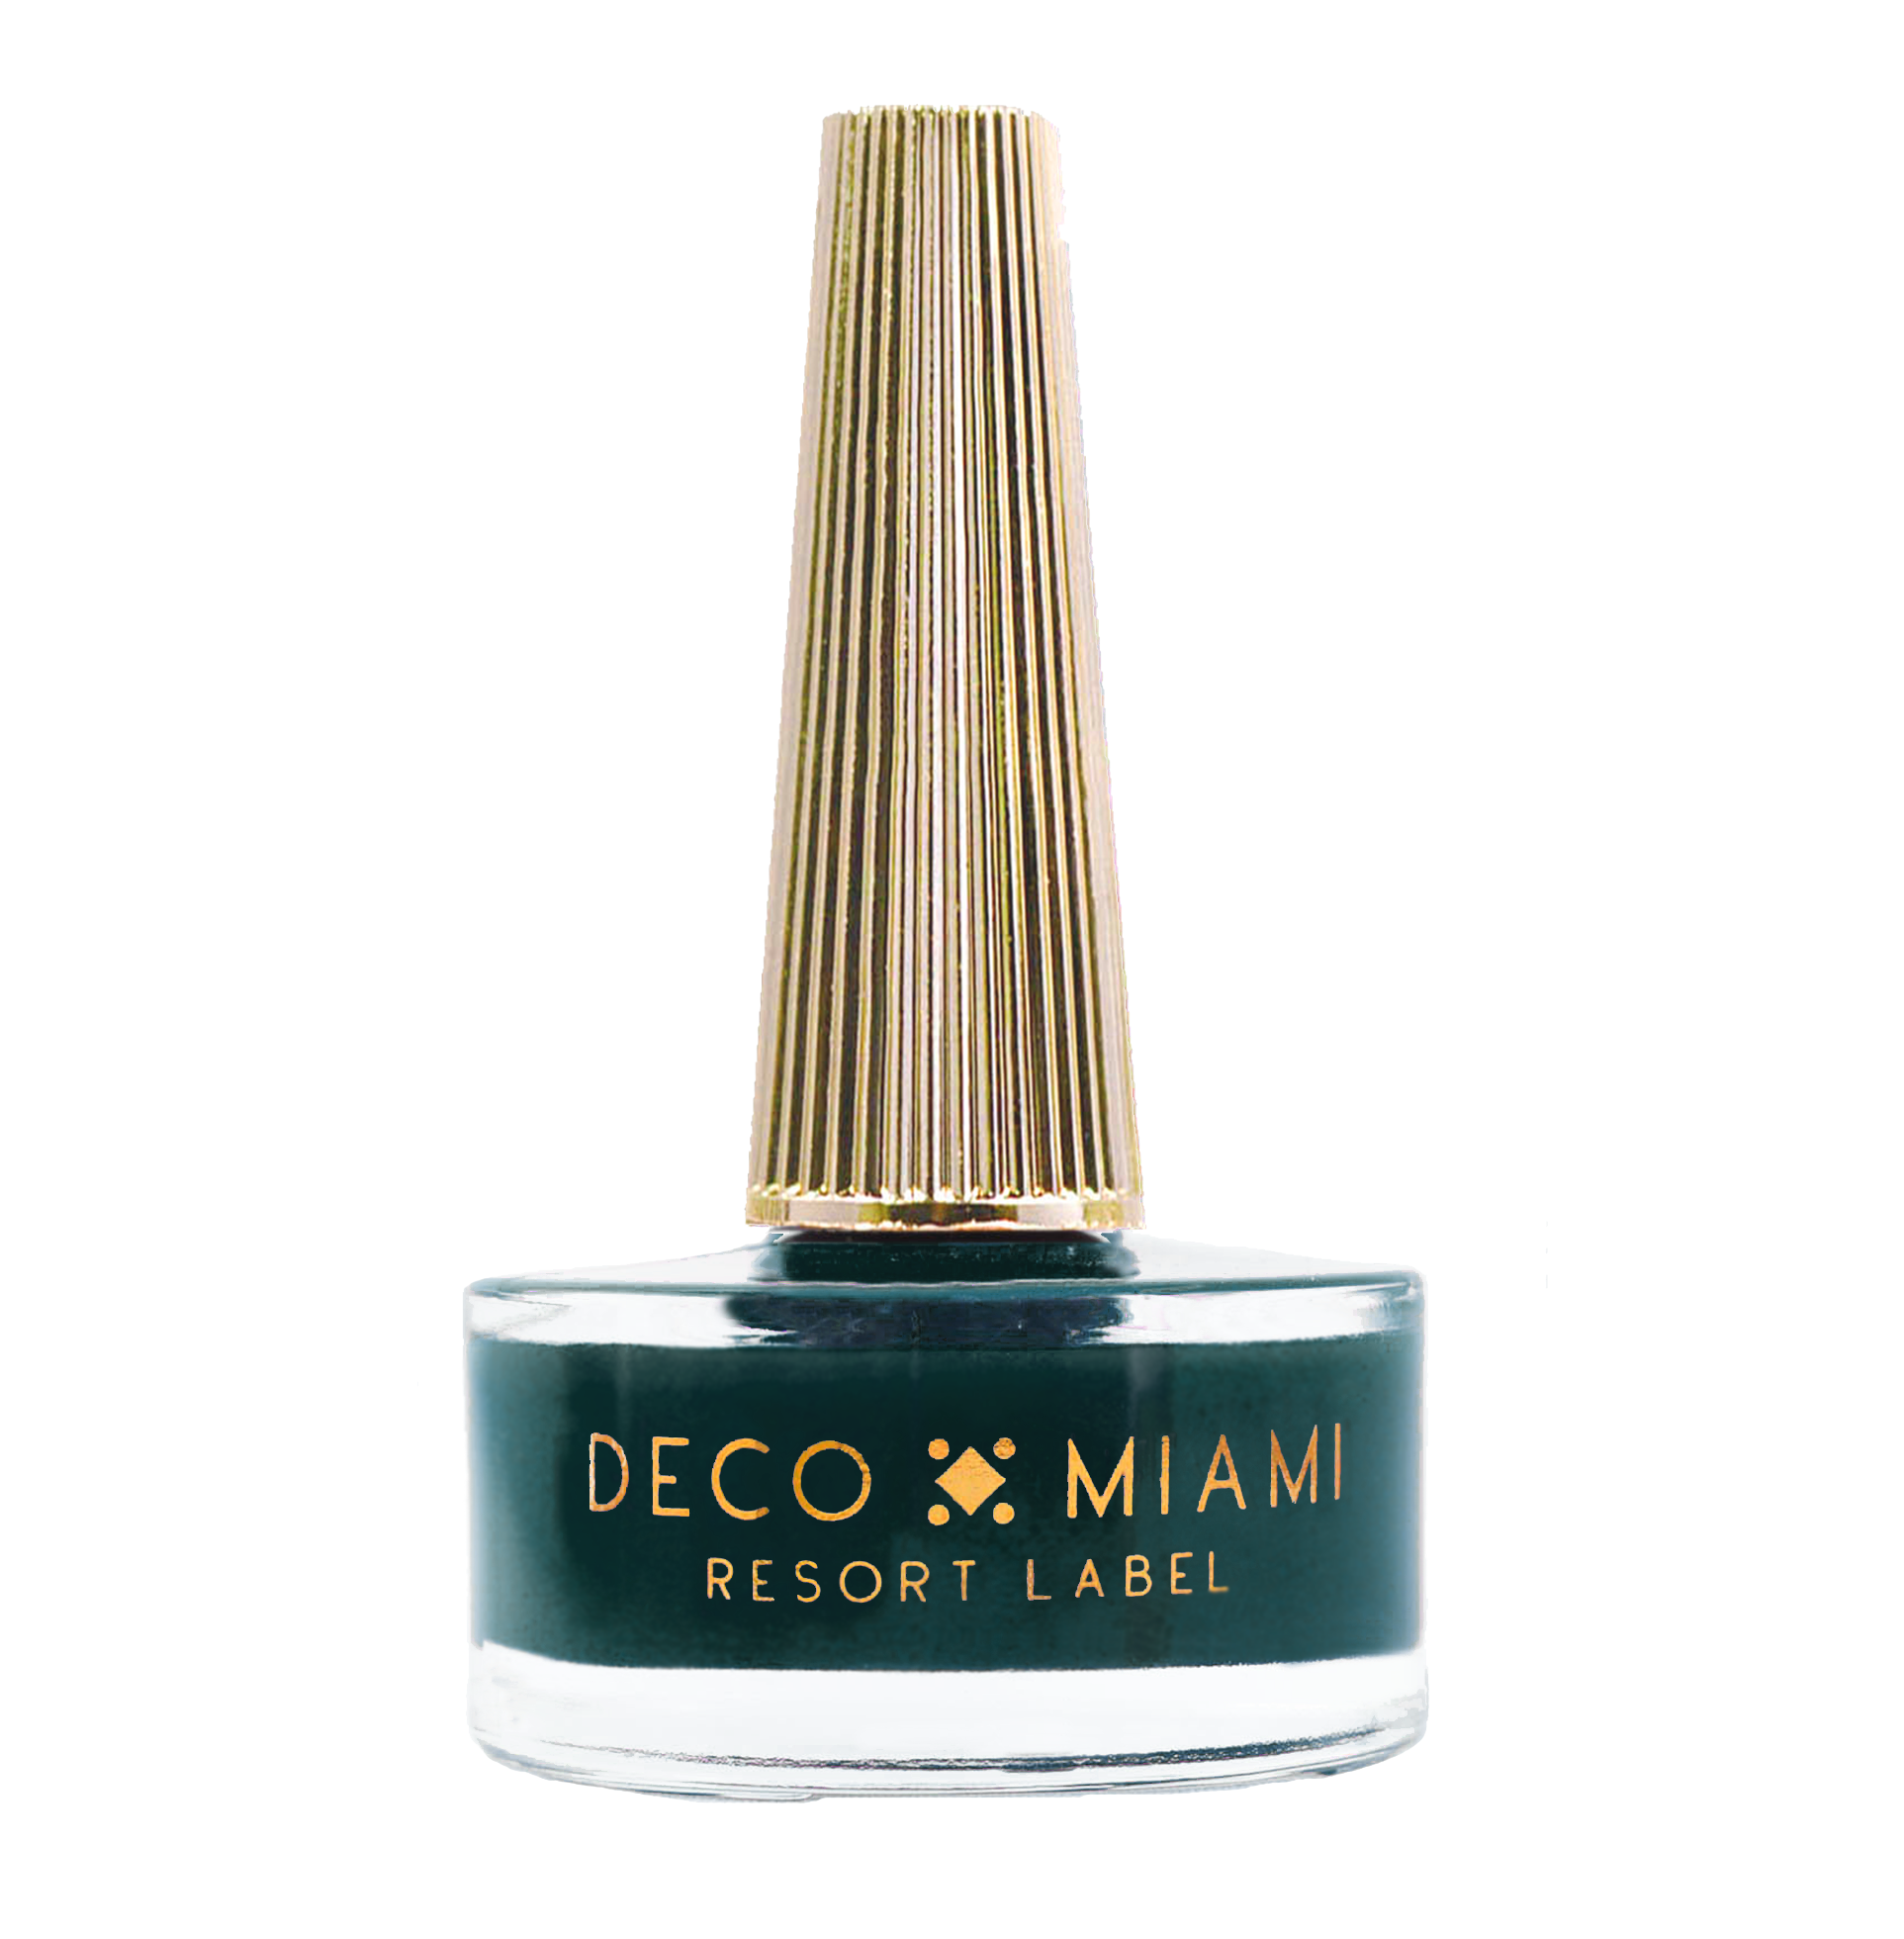 BAD REPUTATION - 14.8ML - emerald green crème nail lacquer by Deco Miami